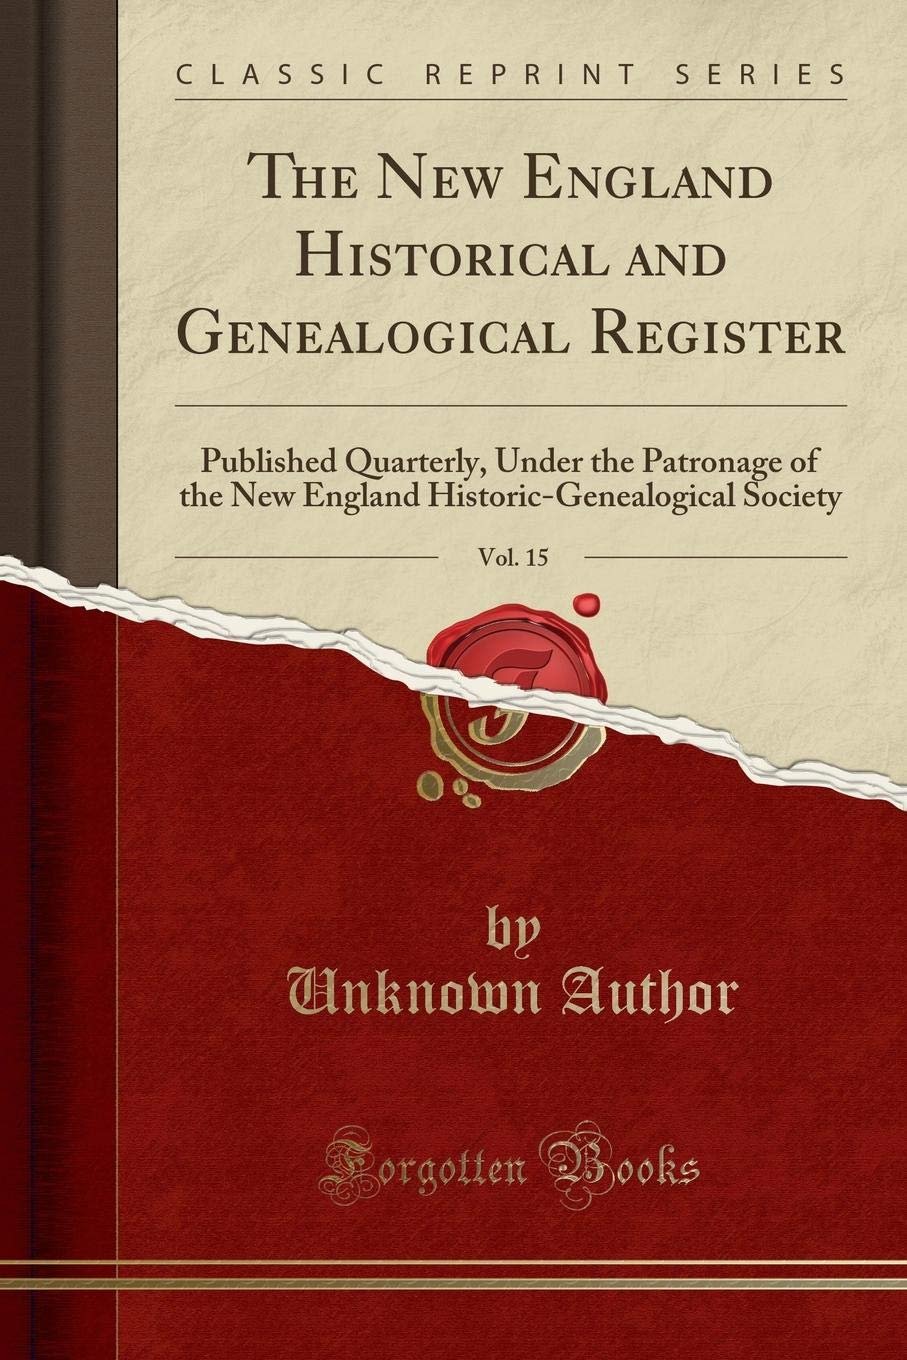 Download The New England Historical and Genealogical Register, Vol. 15: Published Quarterly, Under the Patronage of the New England Historic-Genealogical Society (Classic Reprint) PDF